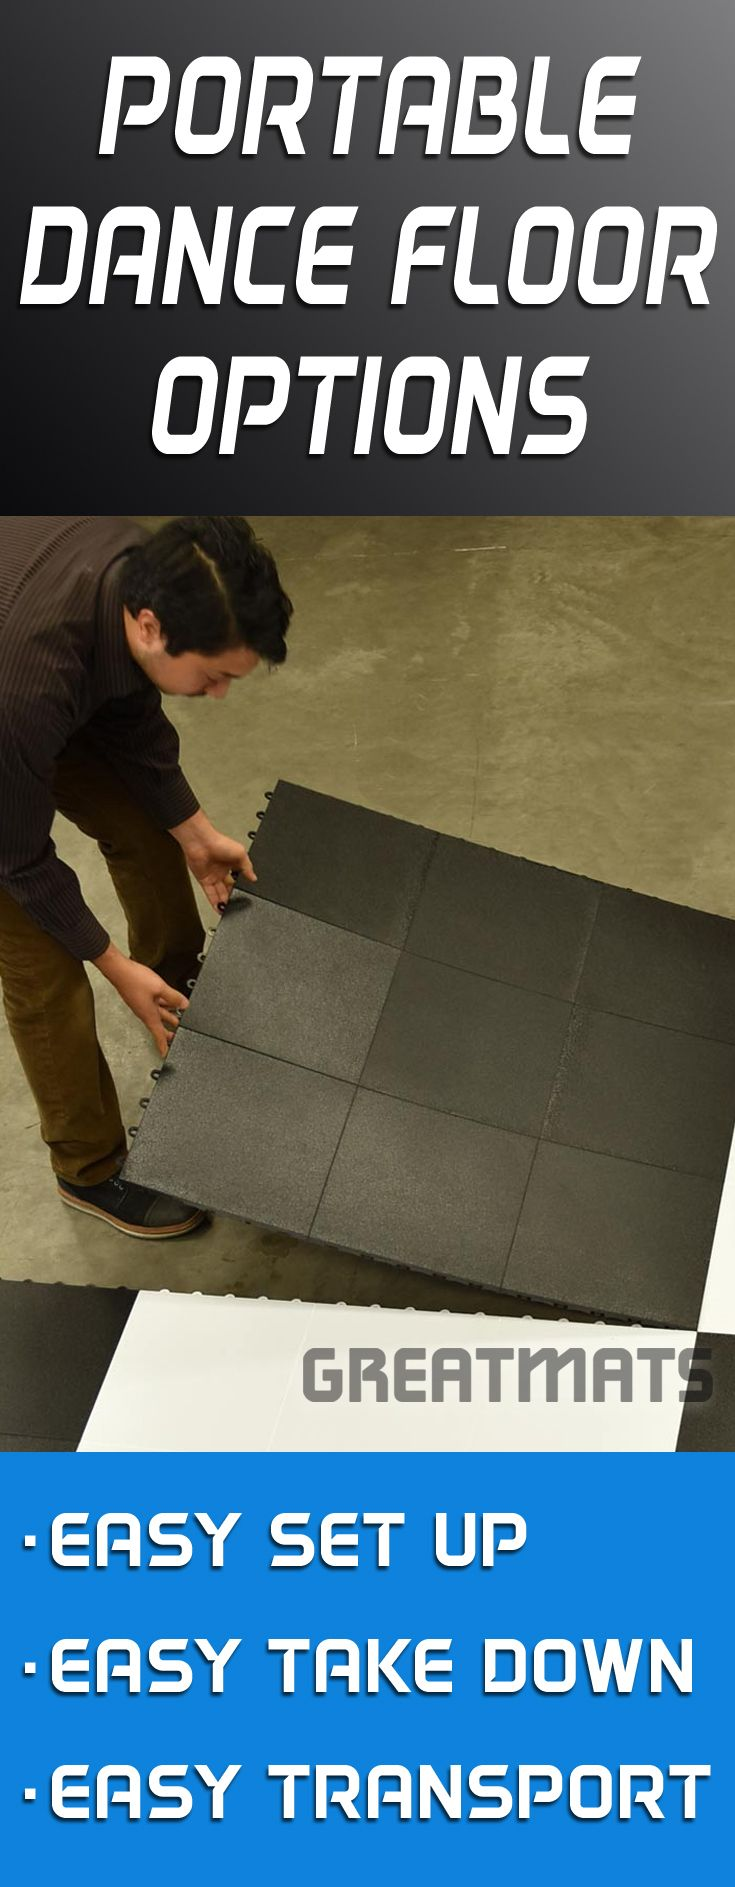 Look for portable dance floors that are easy to set up, take down and transport at Greatmats.